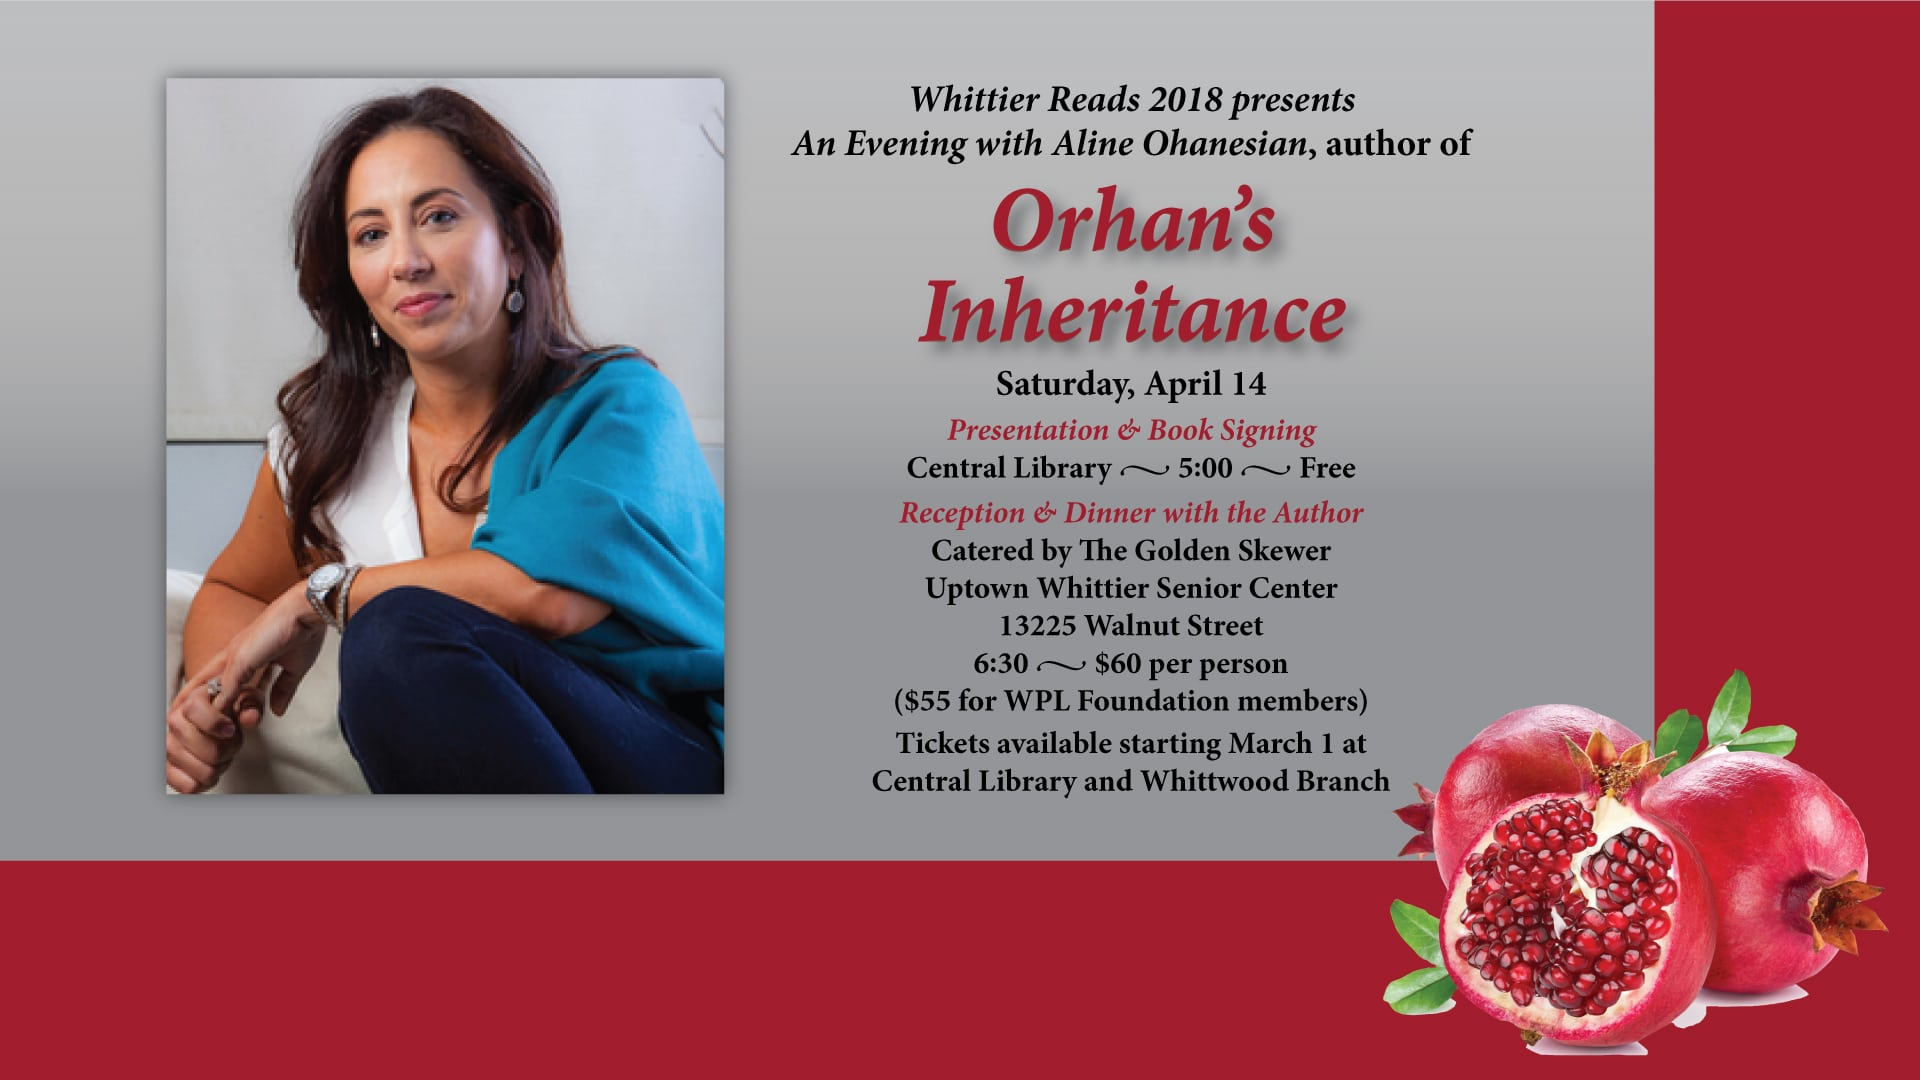 Whittier Reads Author Evening